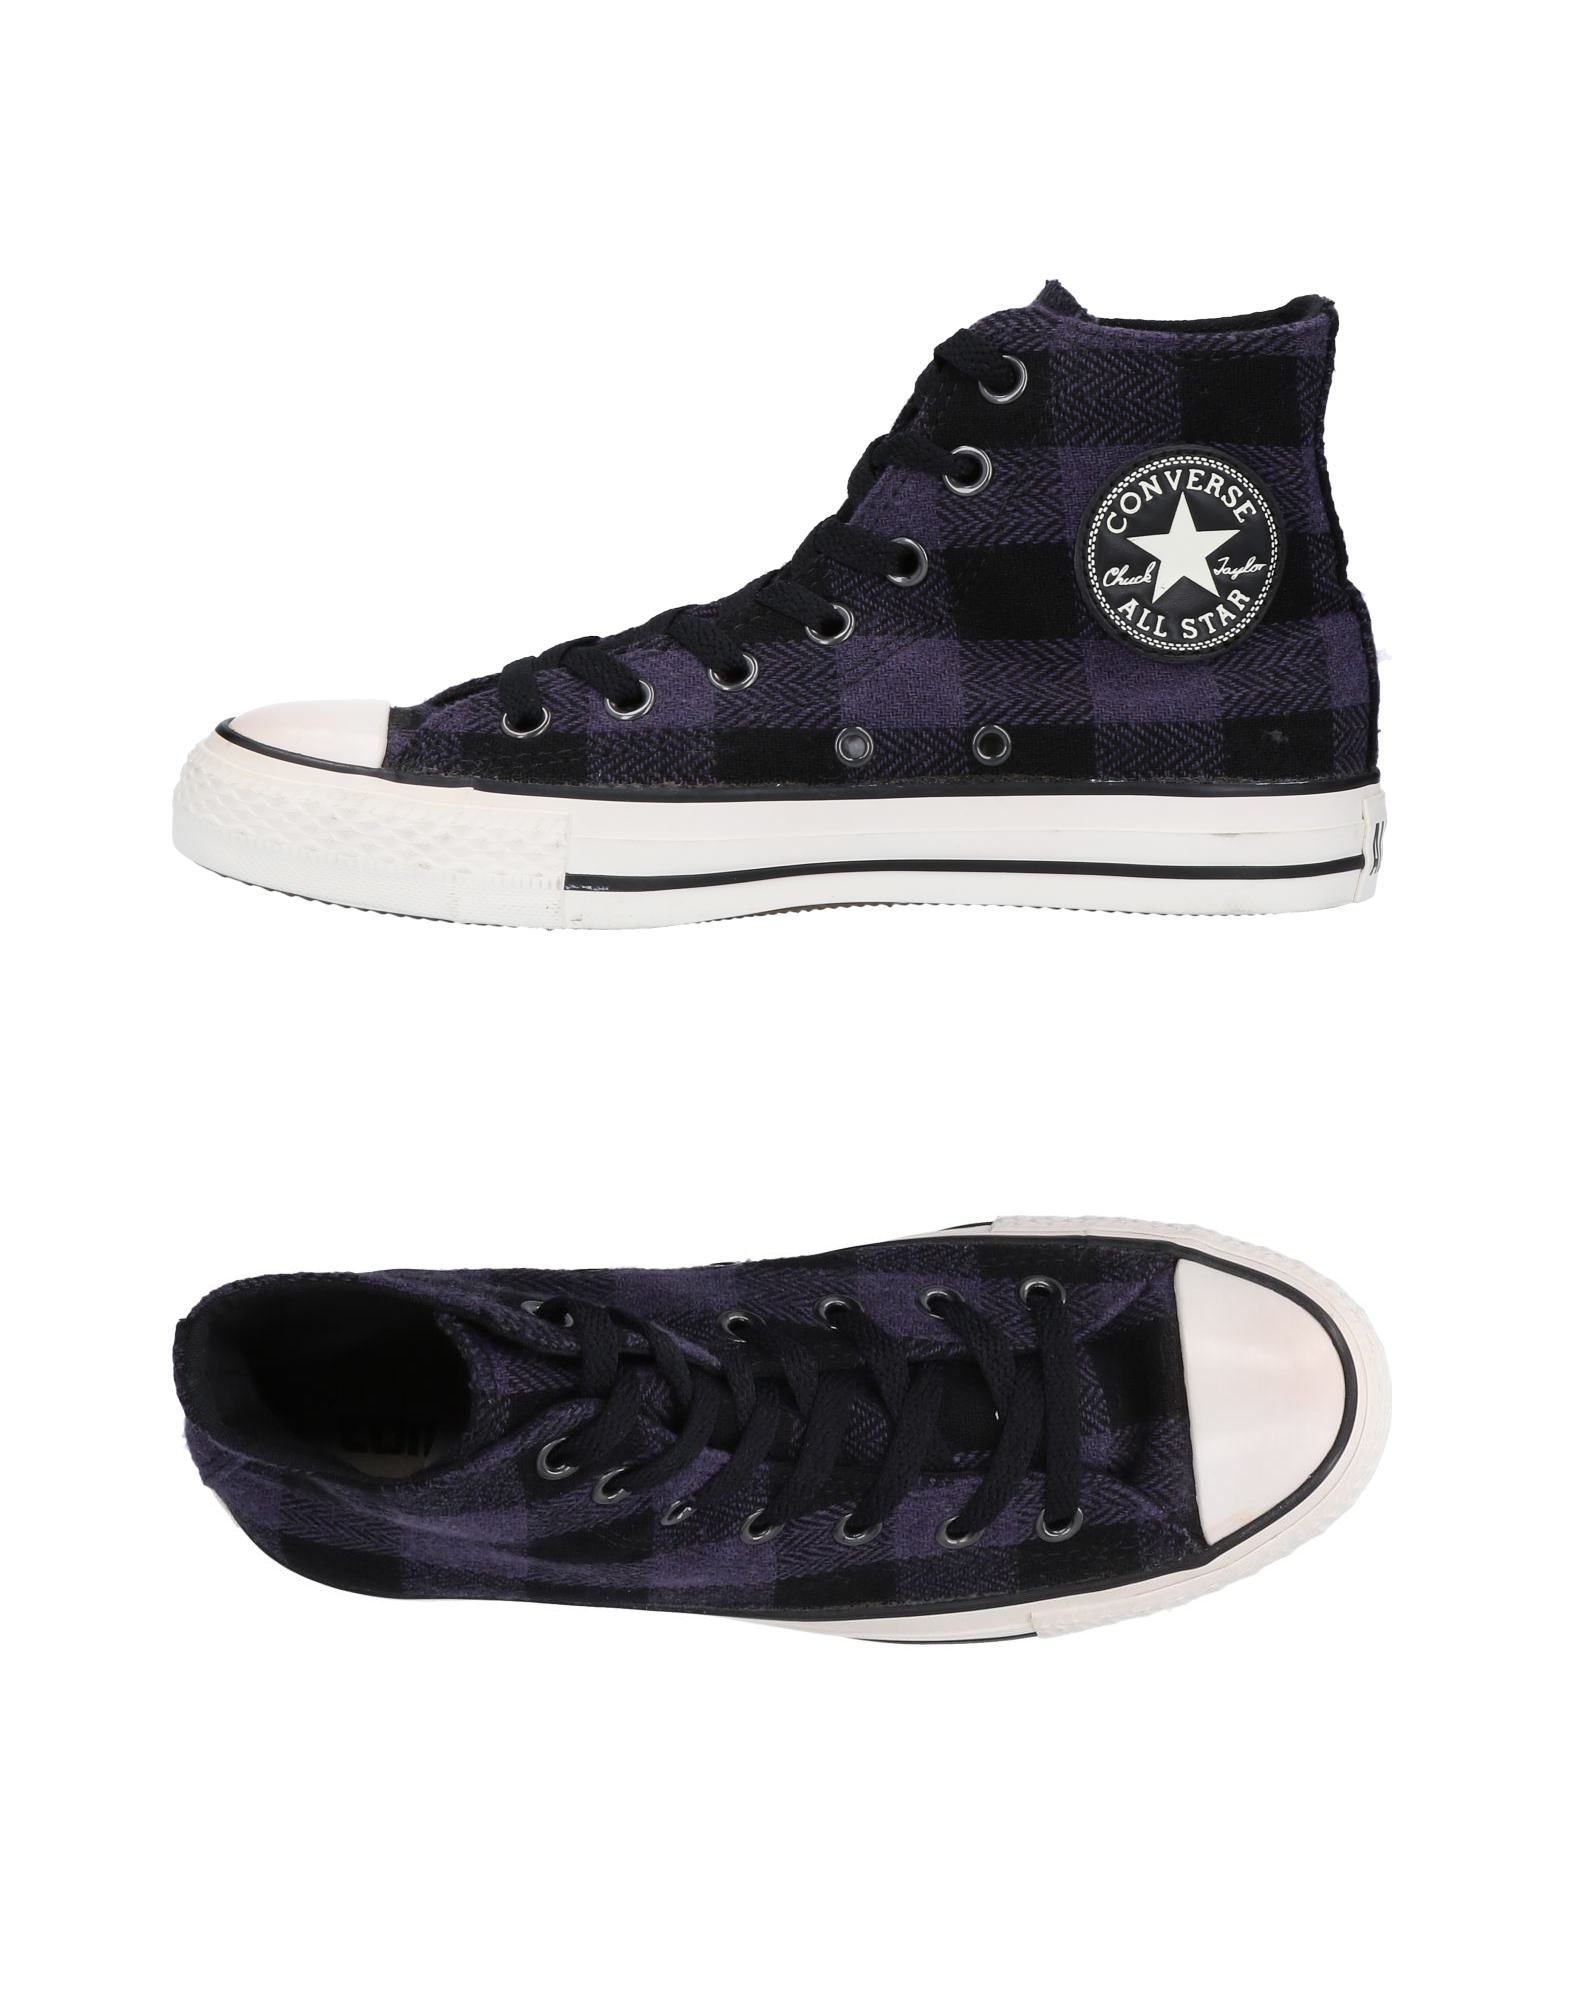 Sneakers Converse All Star Donna - 11500417LJ 11500417LJ - 7a2b11